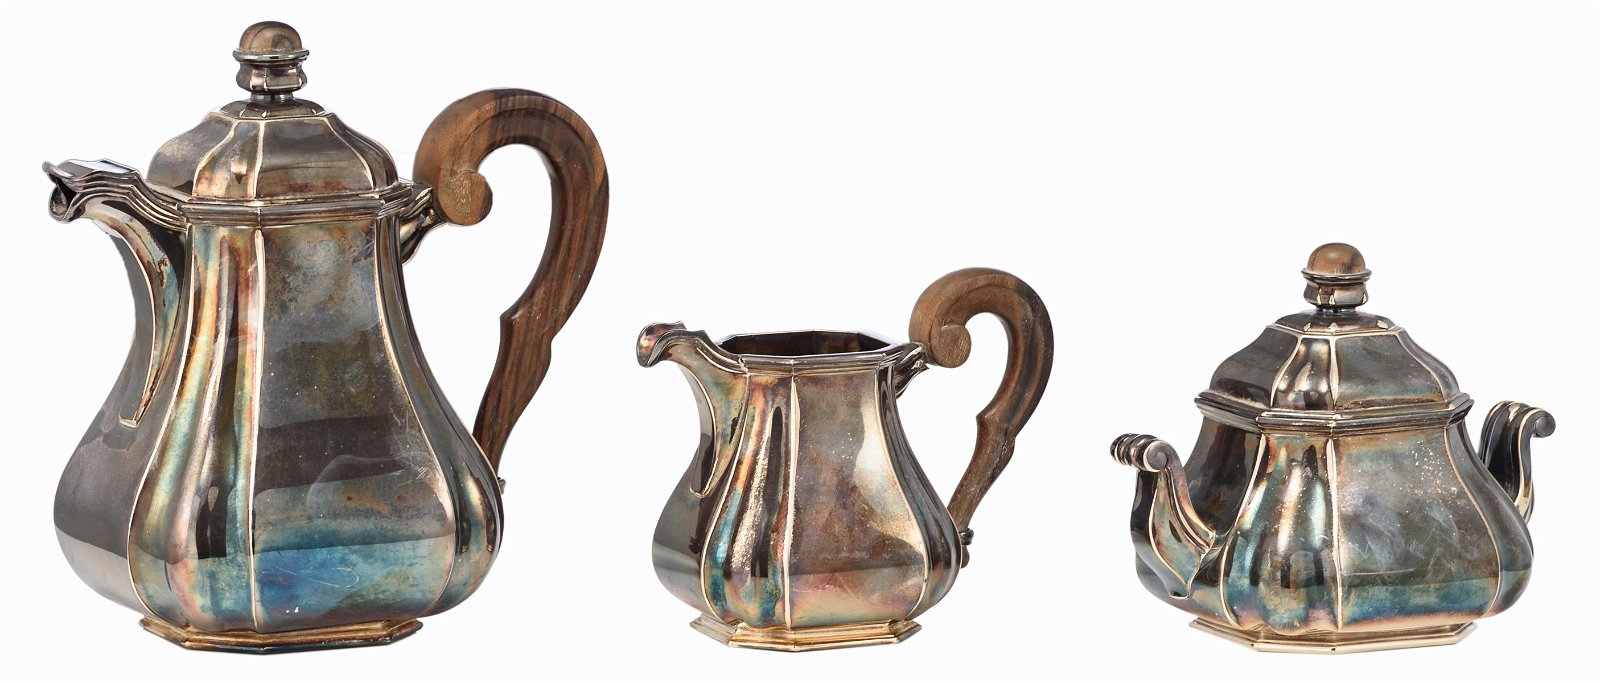 A silver three-part coffee set with walnut handles,